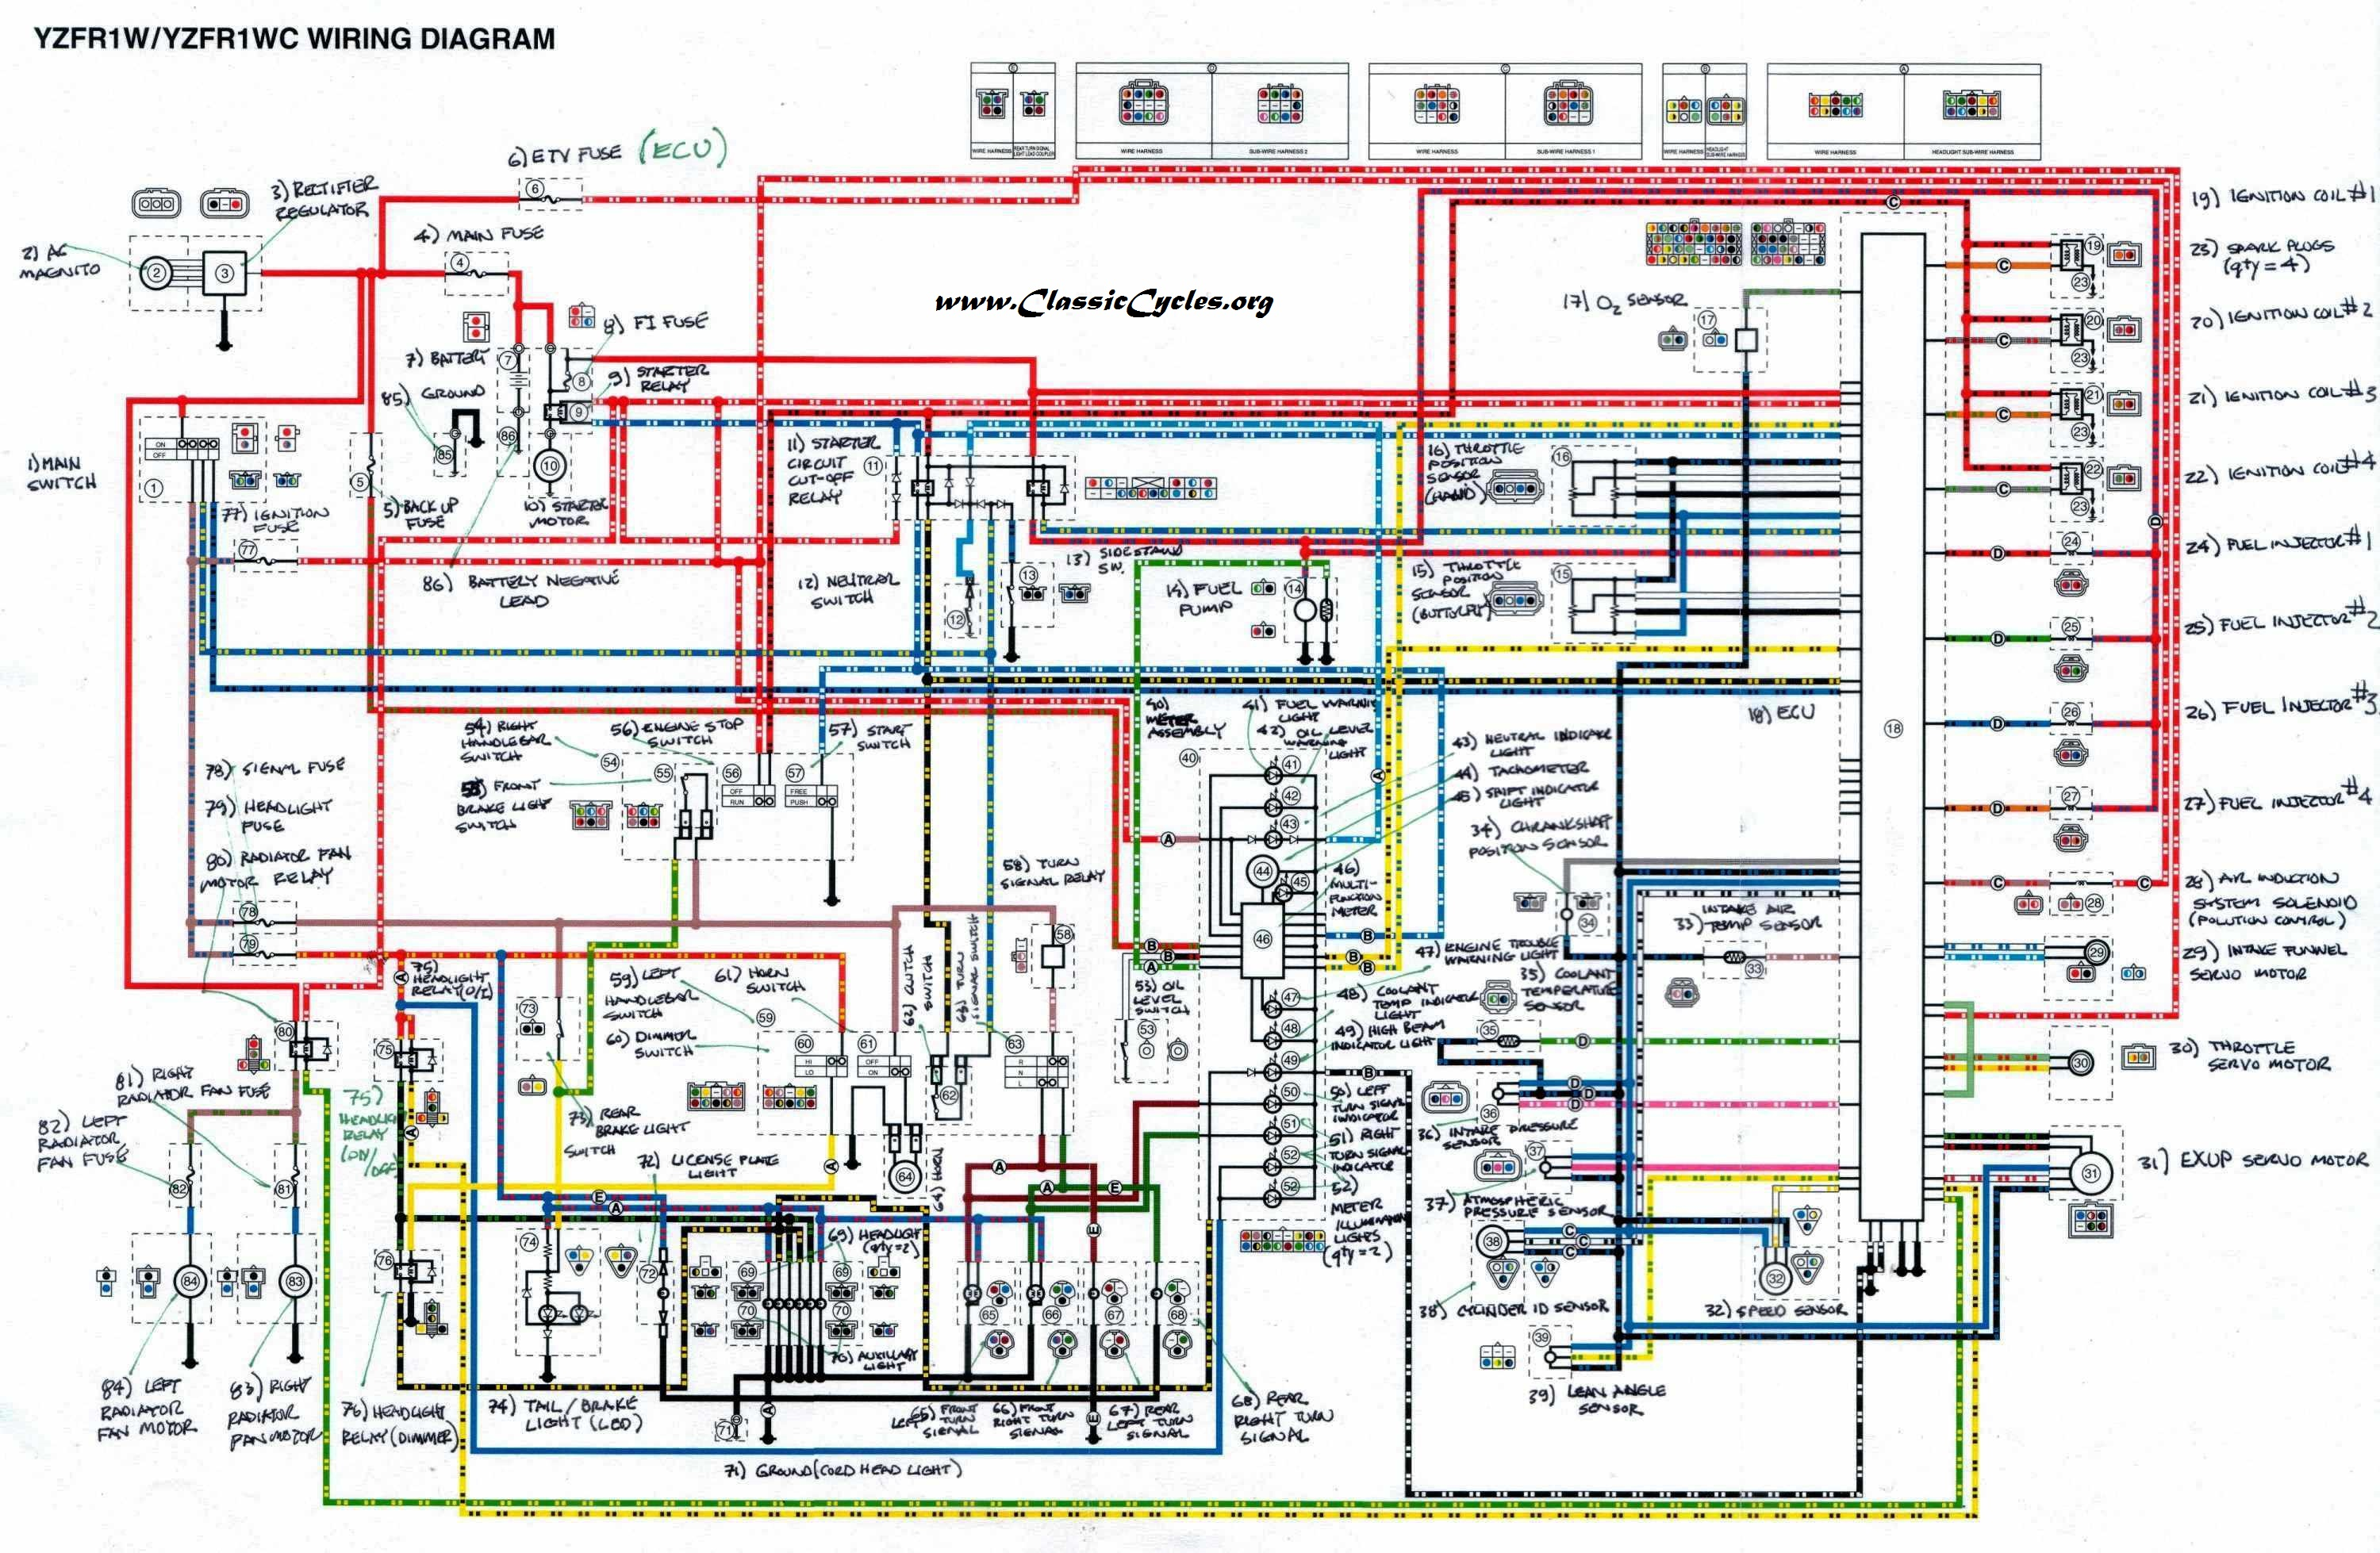 Chis Wiring Harness Free Download - Wiring Diagram Local on